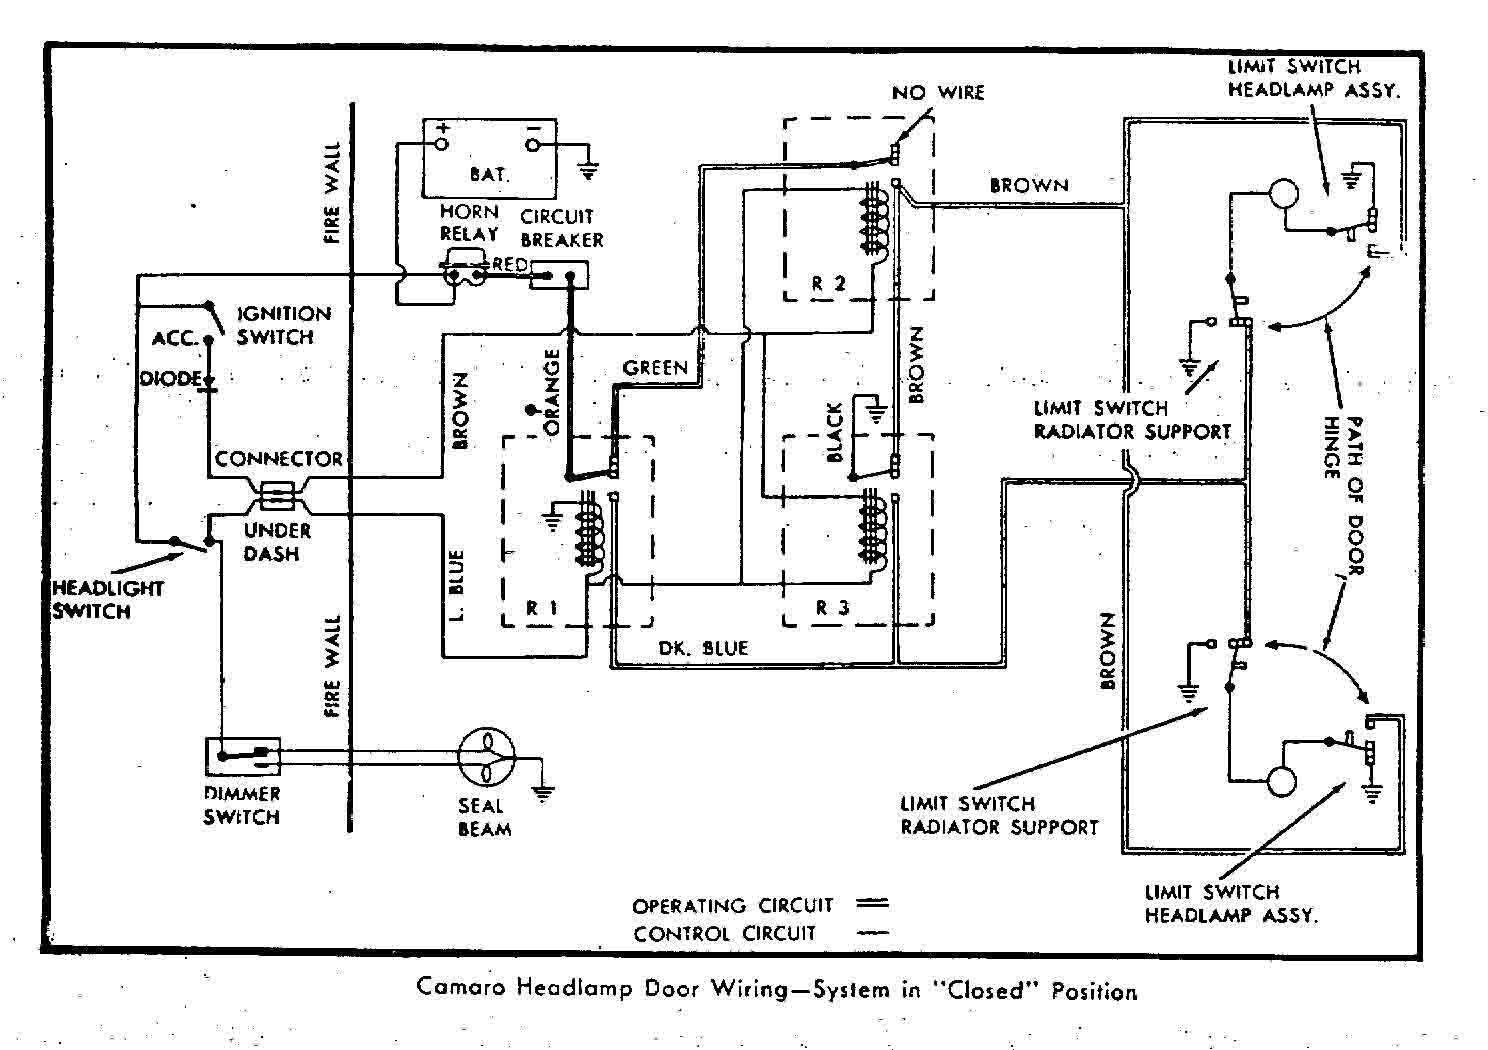 1973 chevy camaro wiring diagram free picture